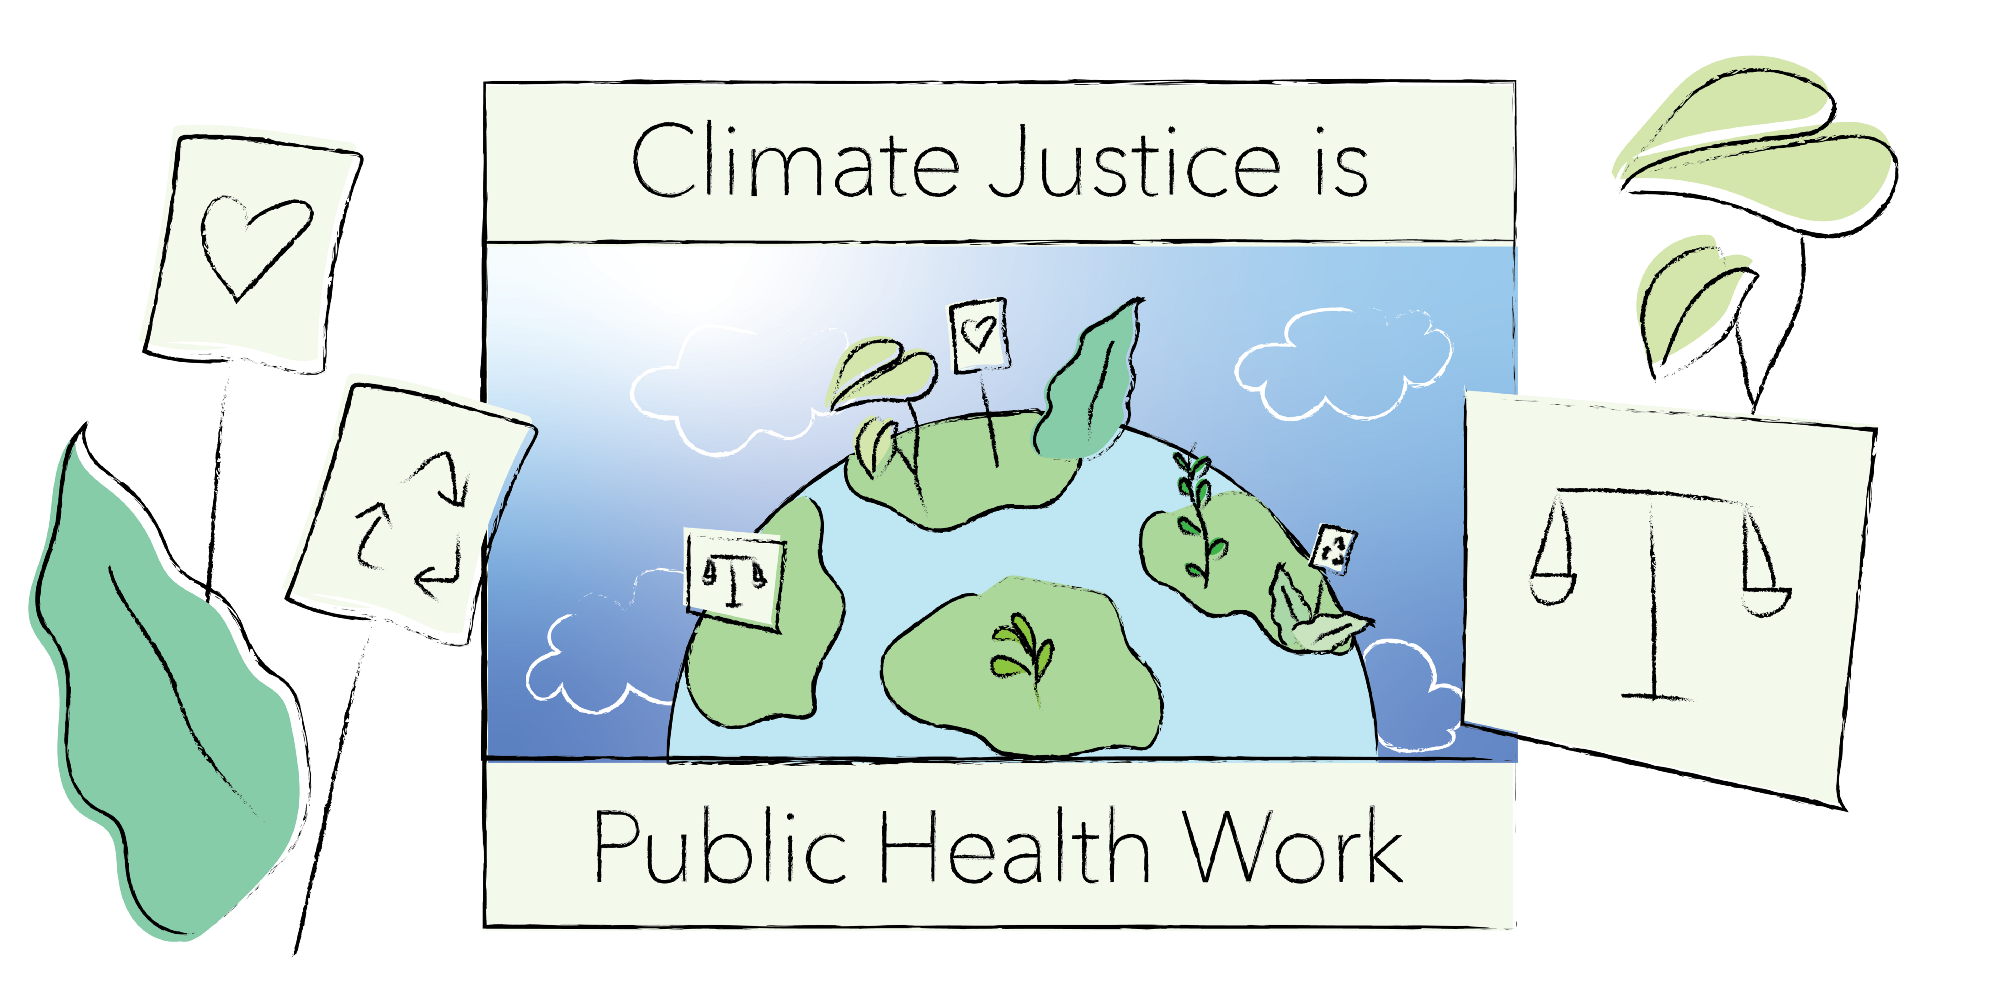 """Image of earth with plants on a protest sign which reads """"Climate Justice is Public Health Work."""" On the sides of images are other protest signs and signage depicting the recycle logo, a heart, and a scale."""